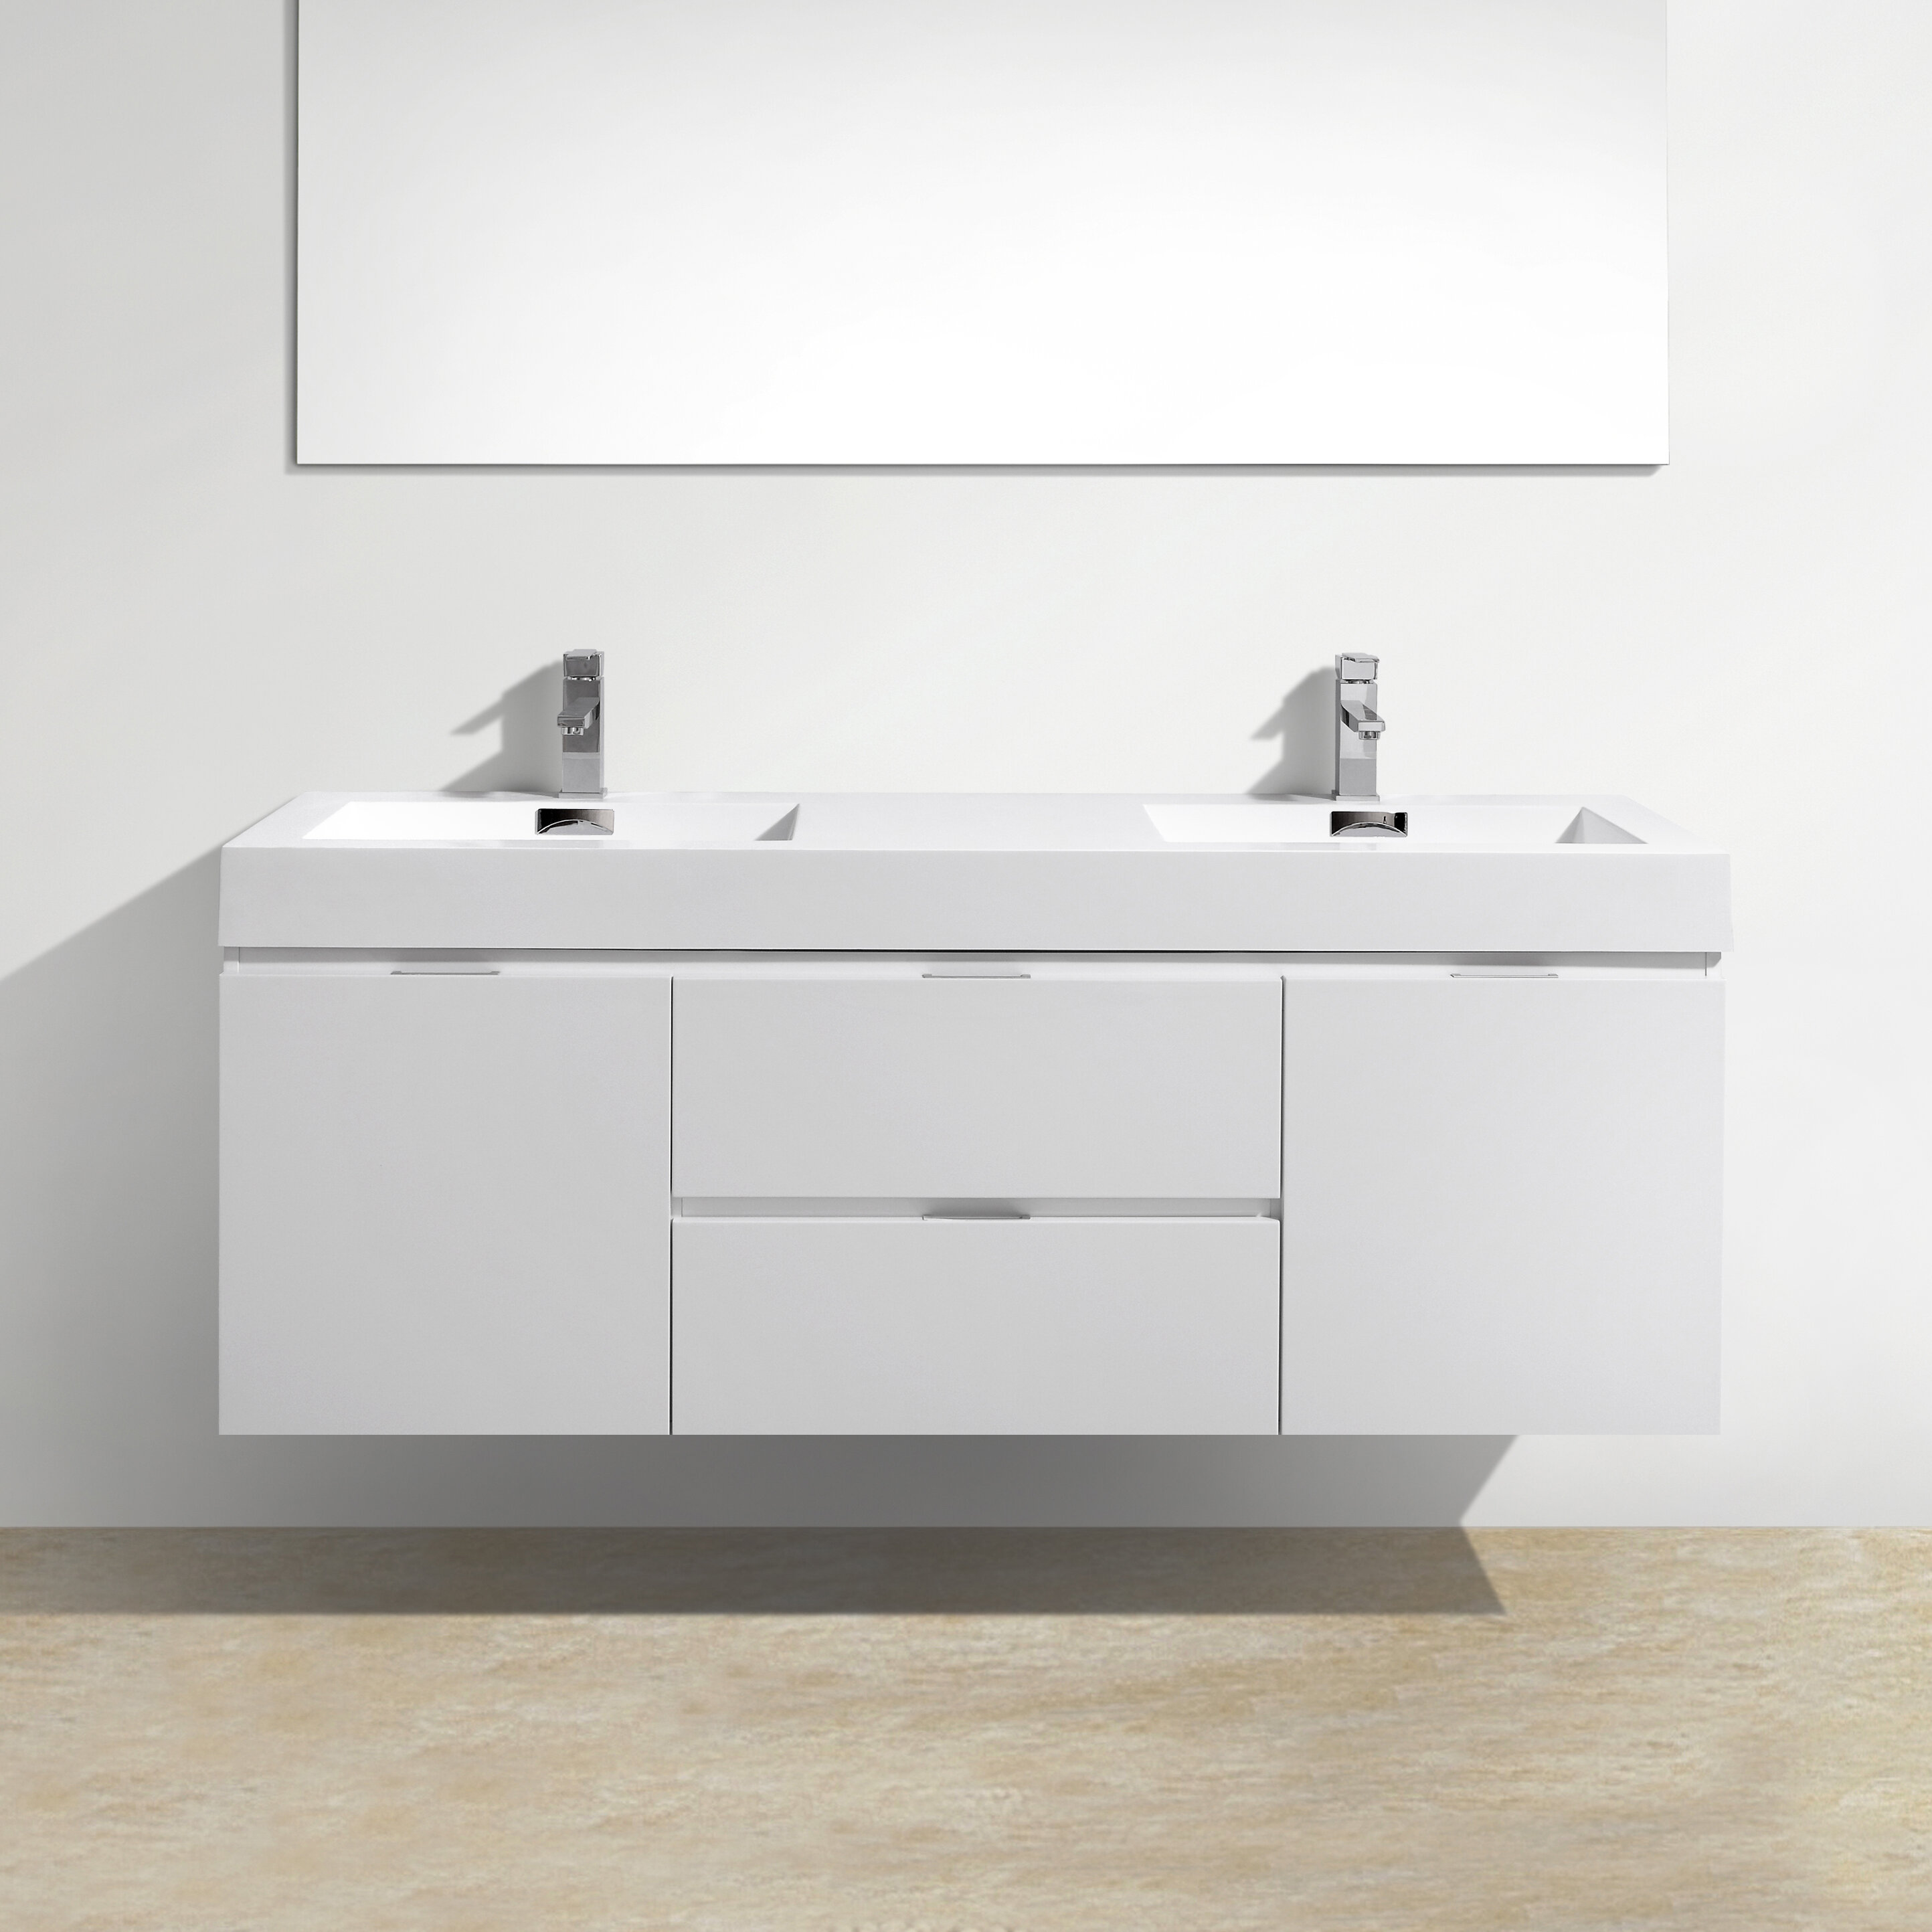 Floating Bathroom Vanity hen how to Home Decorating Ideas